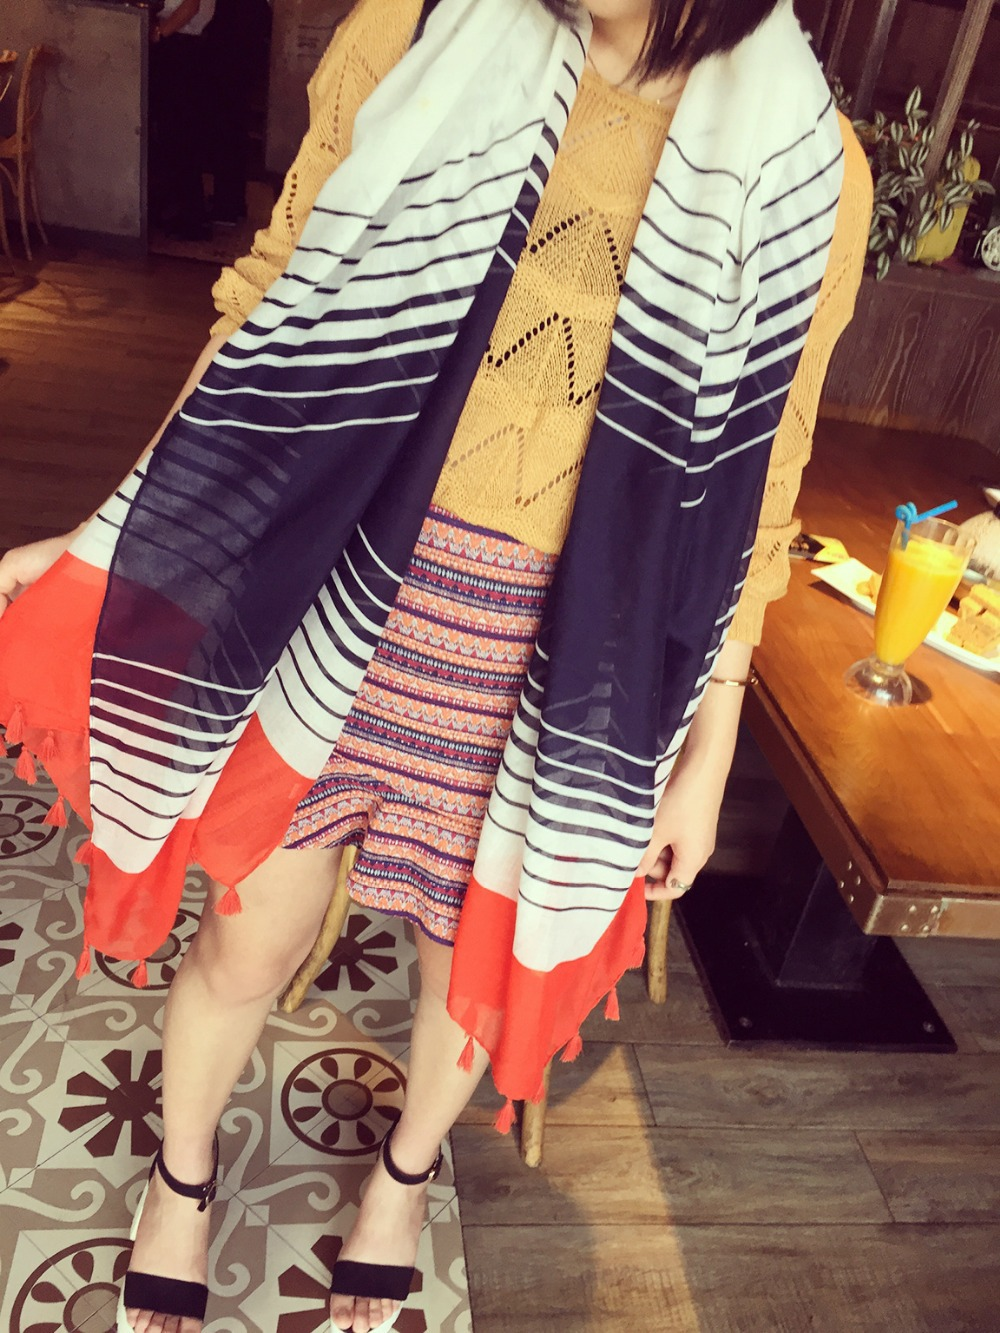 2015 Simple black With dark blue,red Hit color scarf stripes Voile shawl HZLC108(China (Mainland))